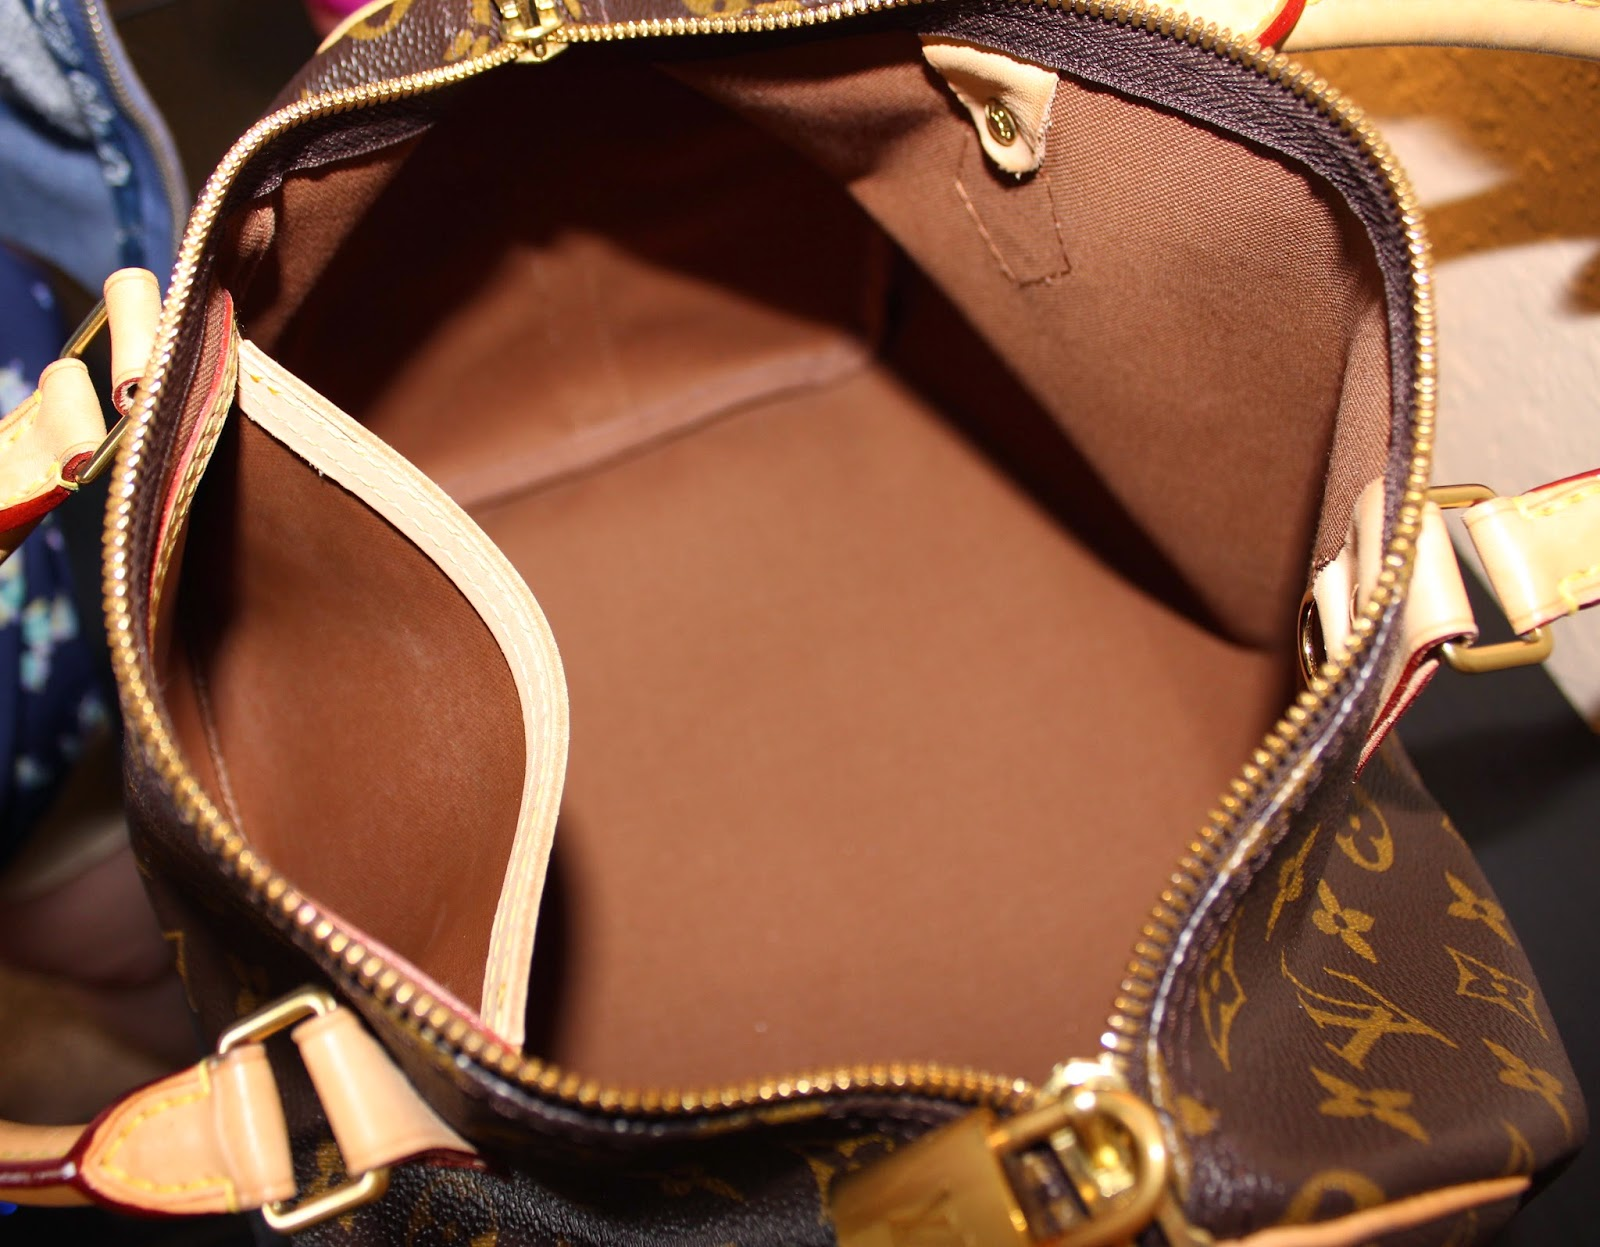 Inside of Louis Vuitton Speedy Bandoulière 30